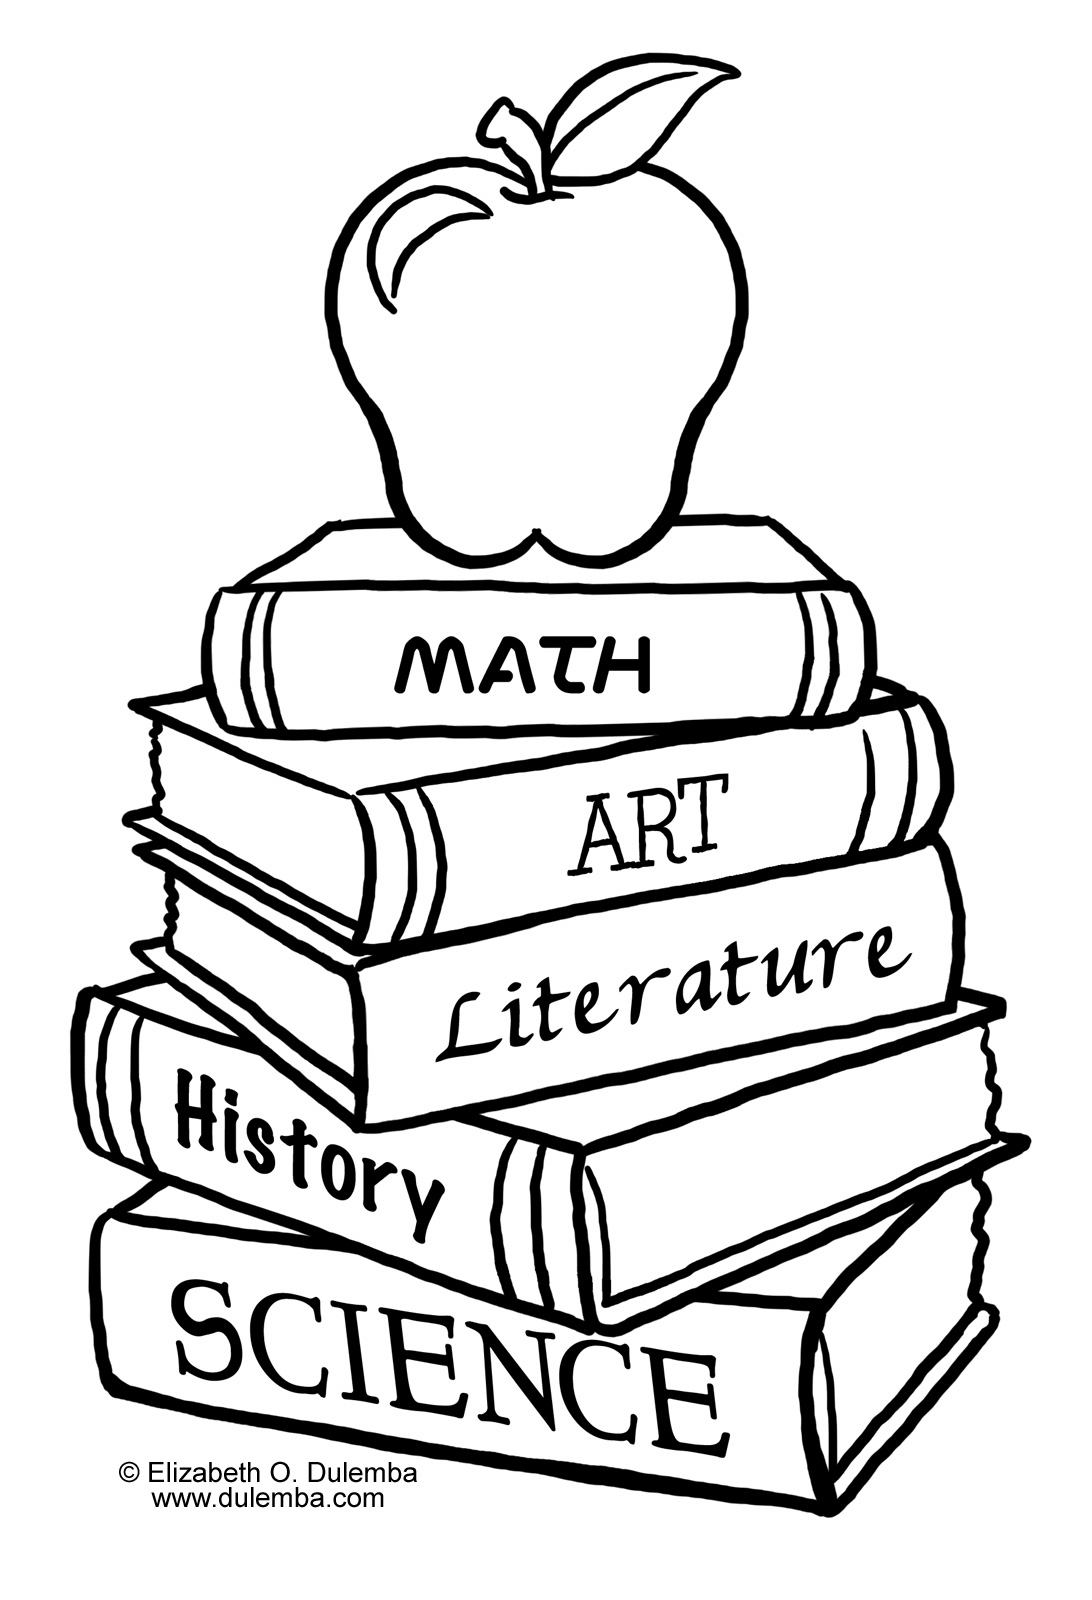 Coloring pages us history - Coloring Pages Us History 54